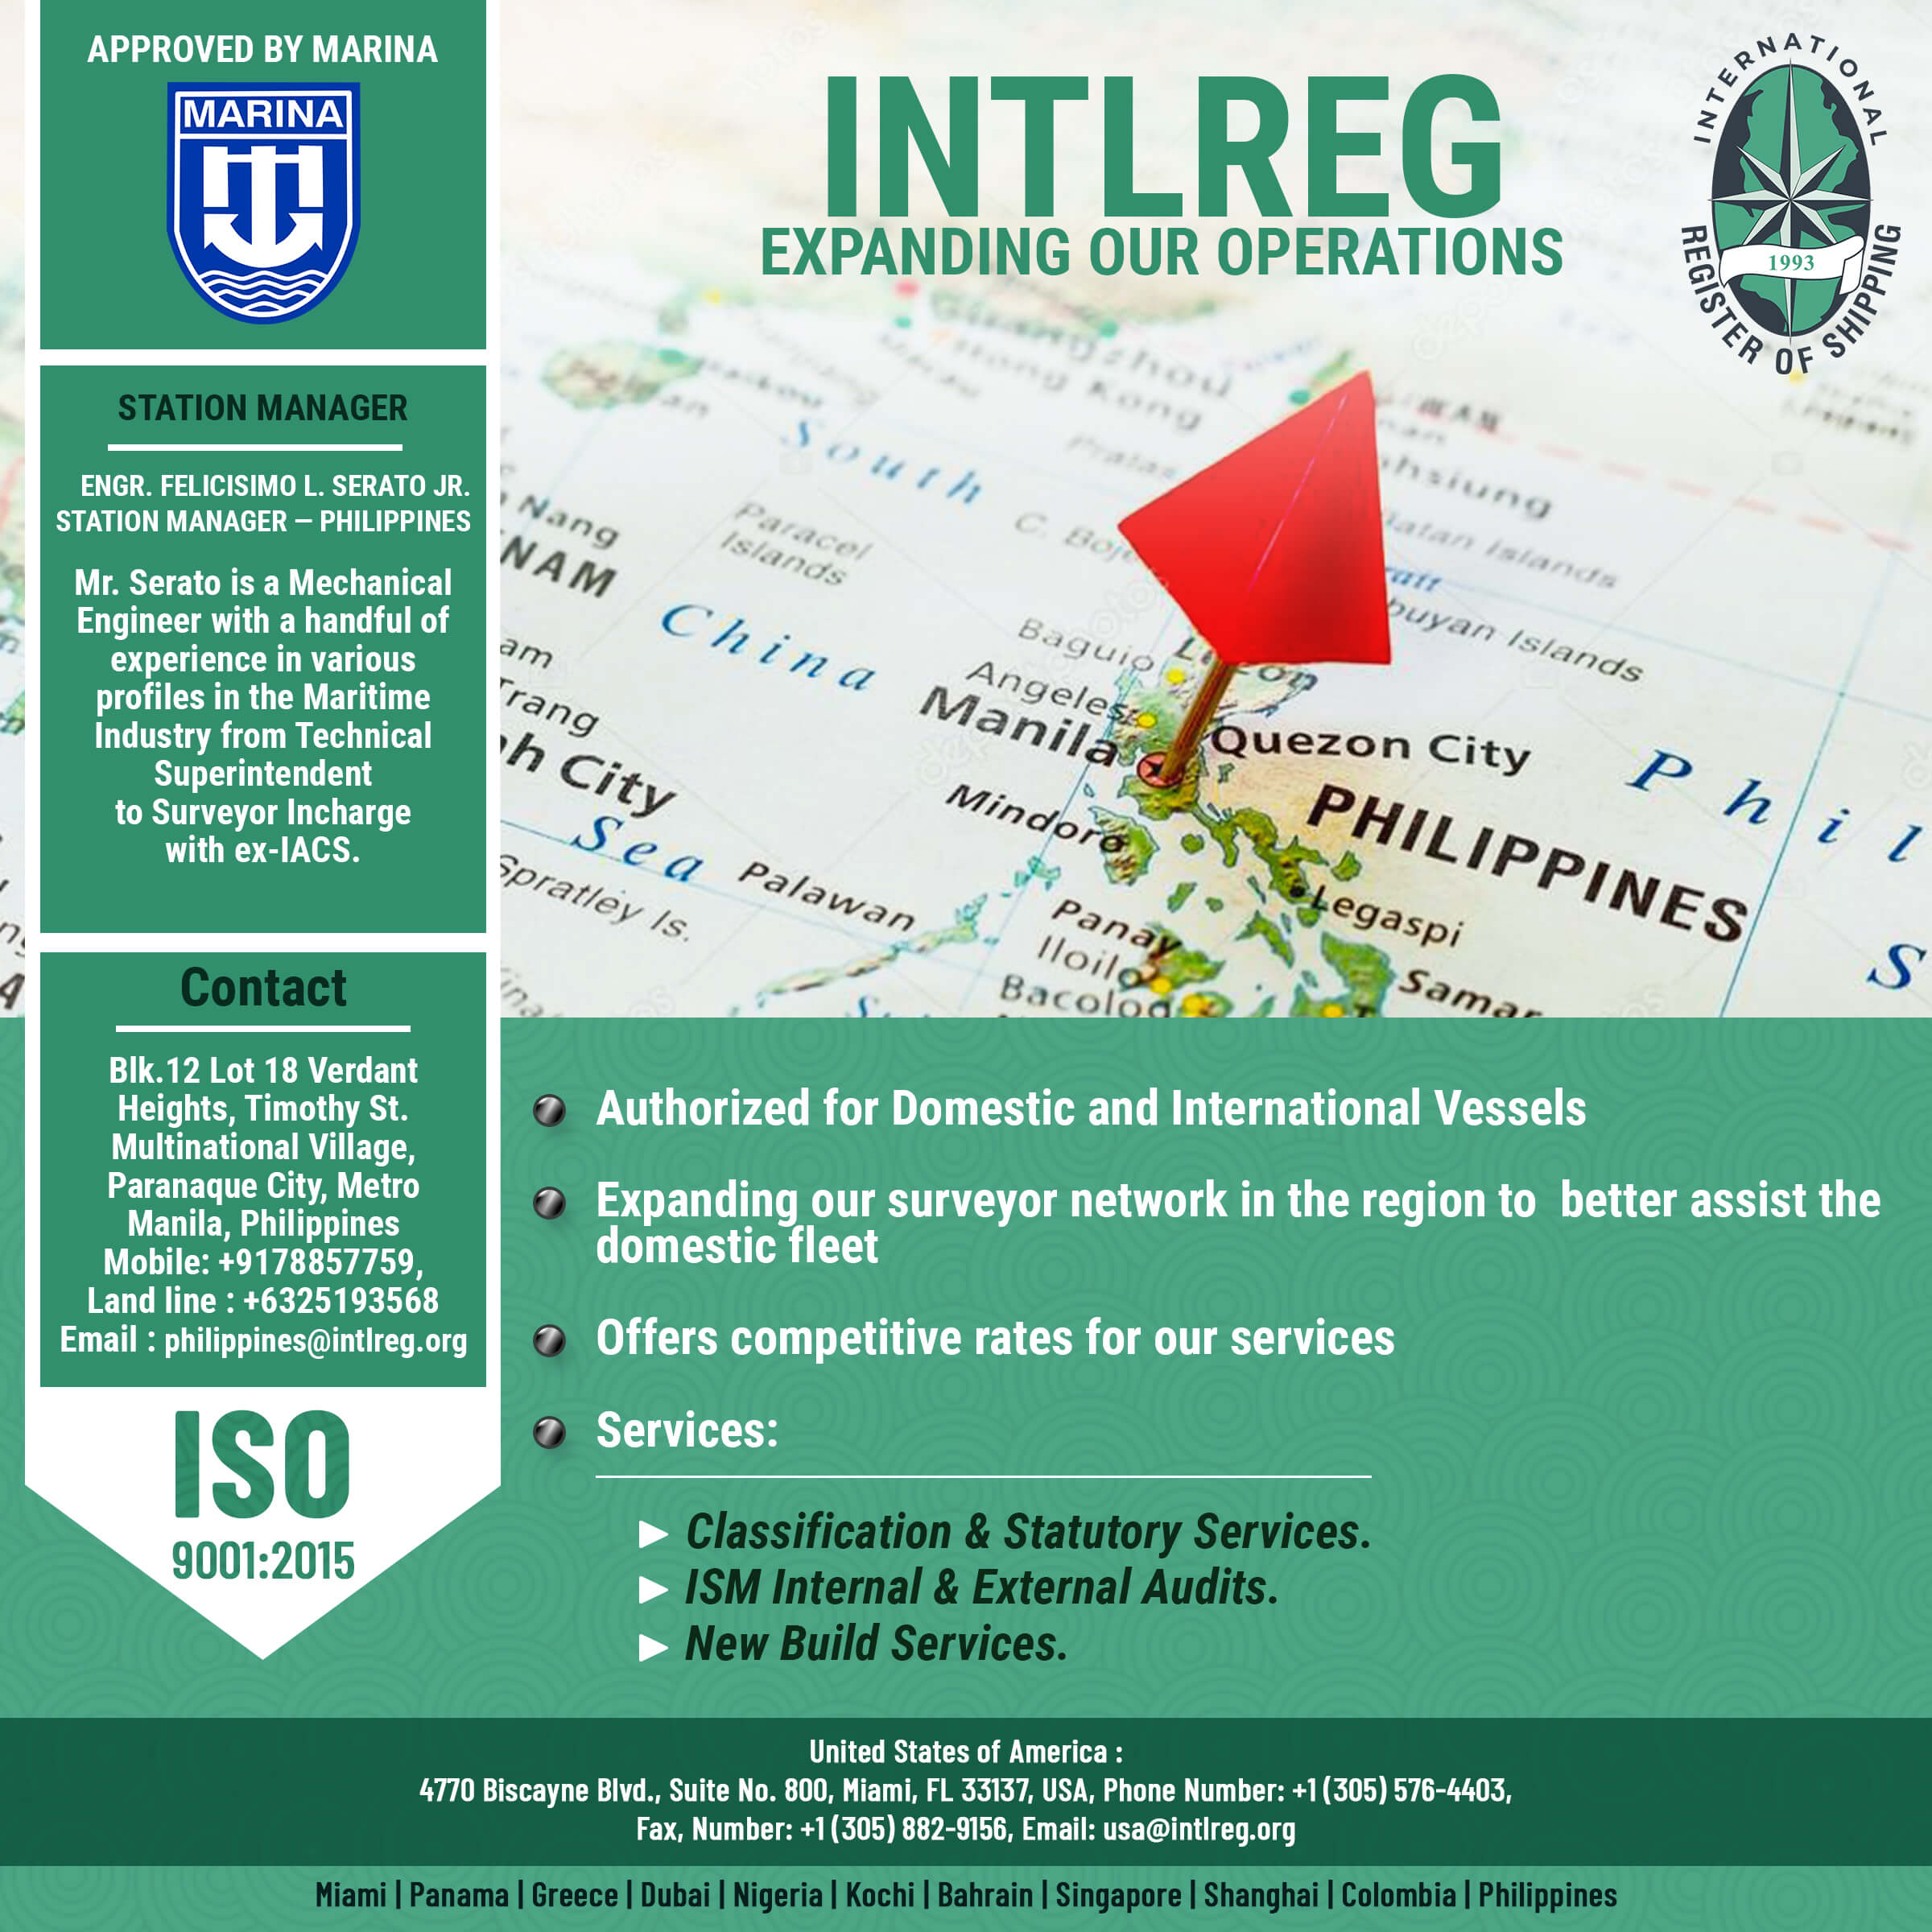 INTLREG – Expanding our operations at Philippines